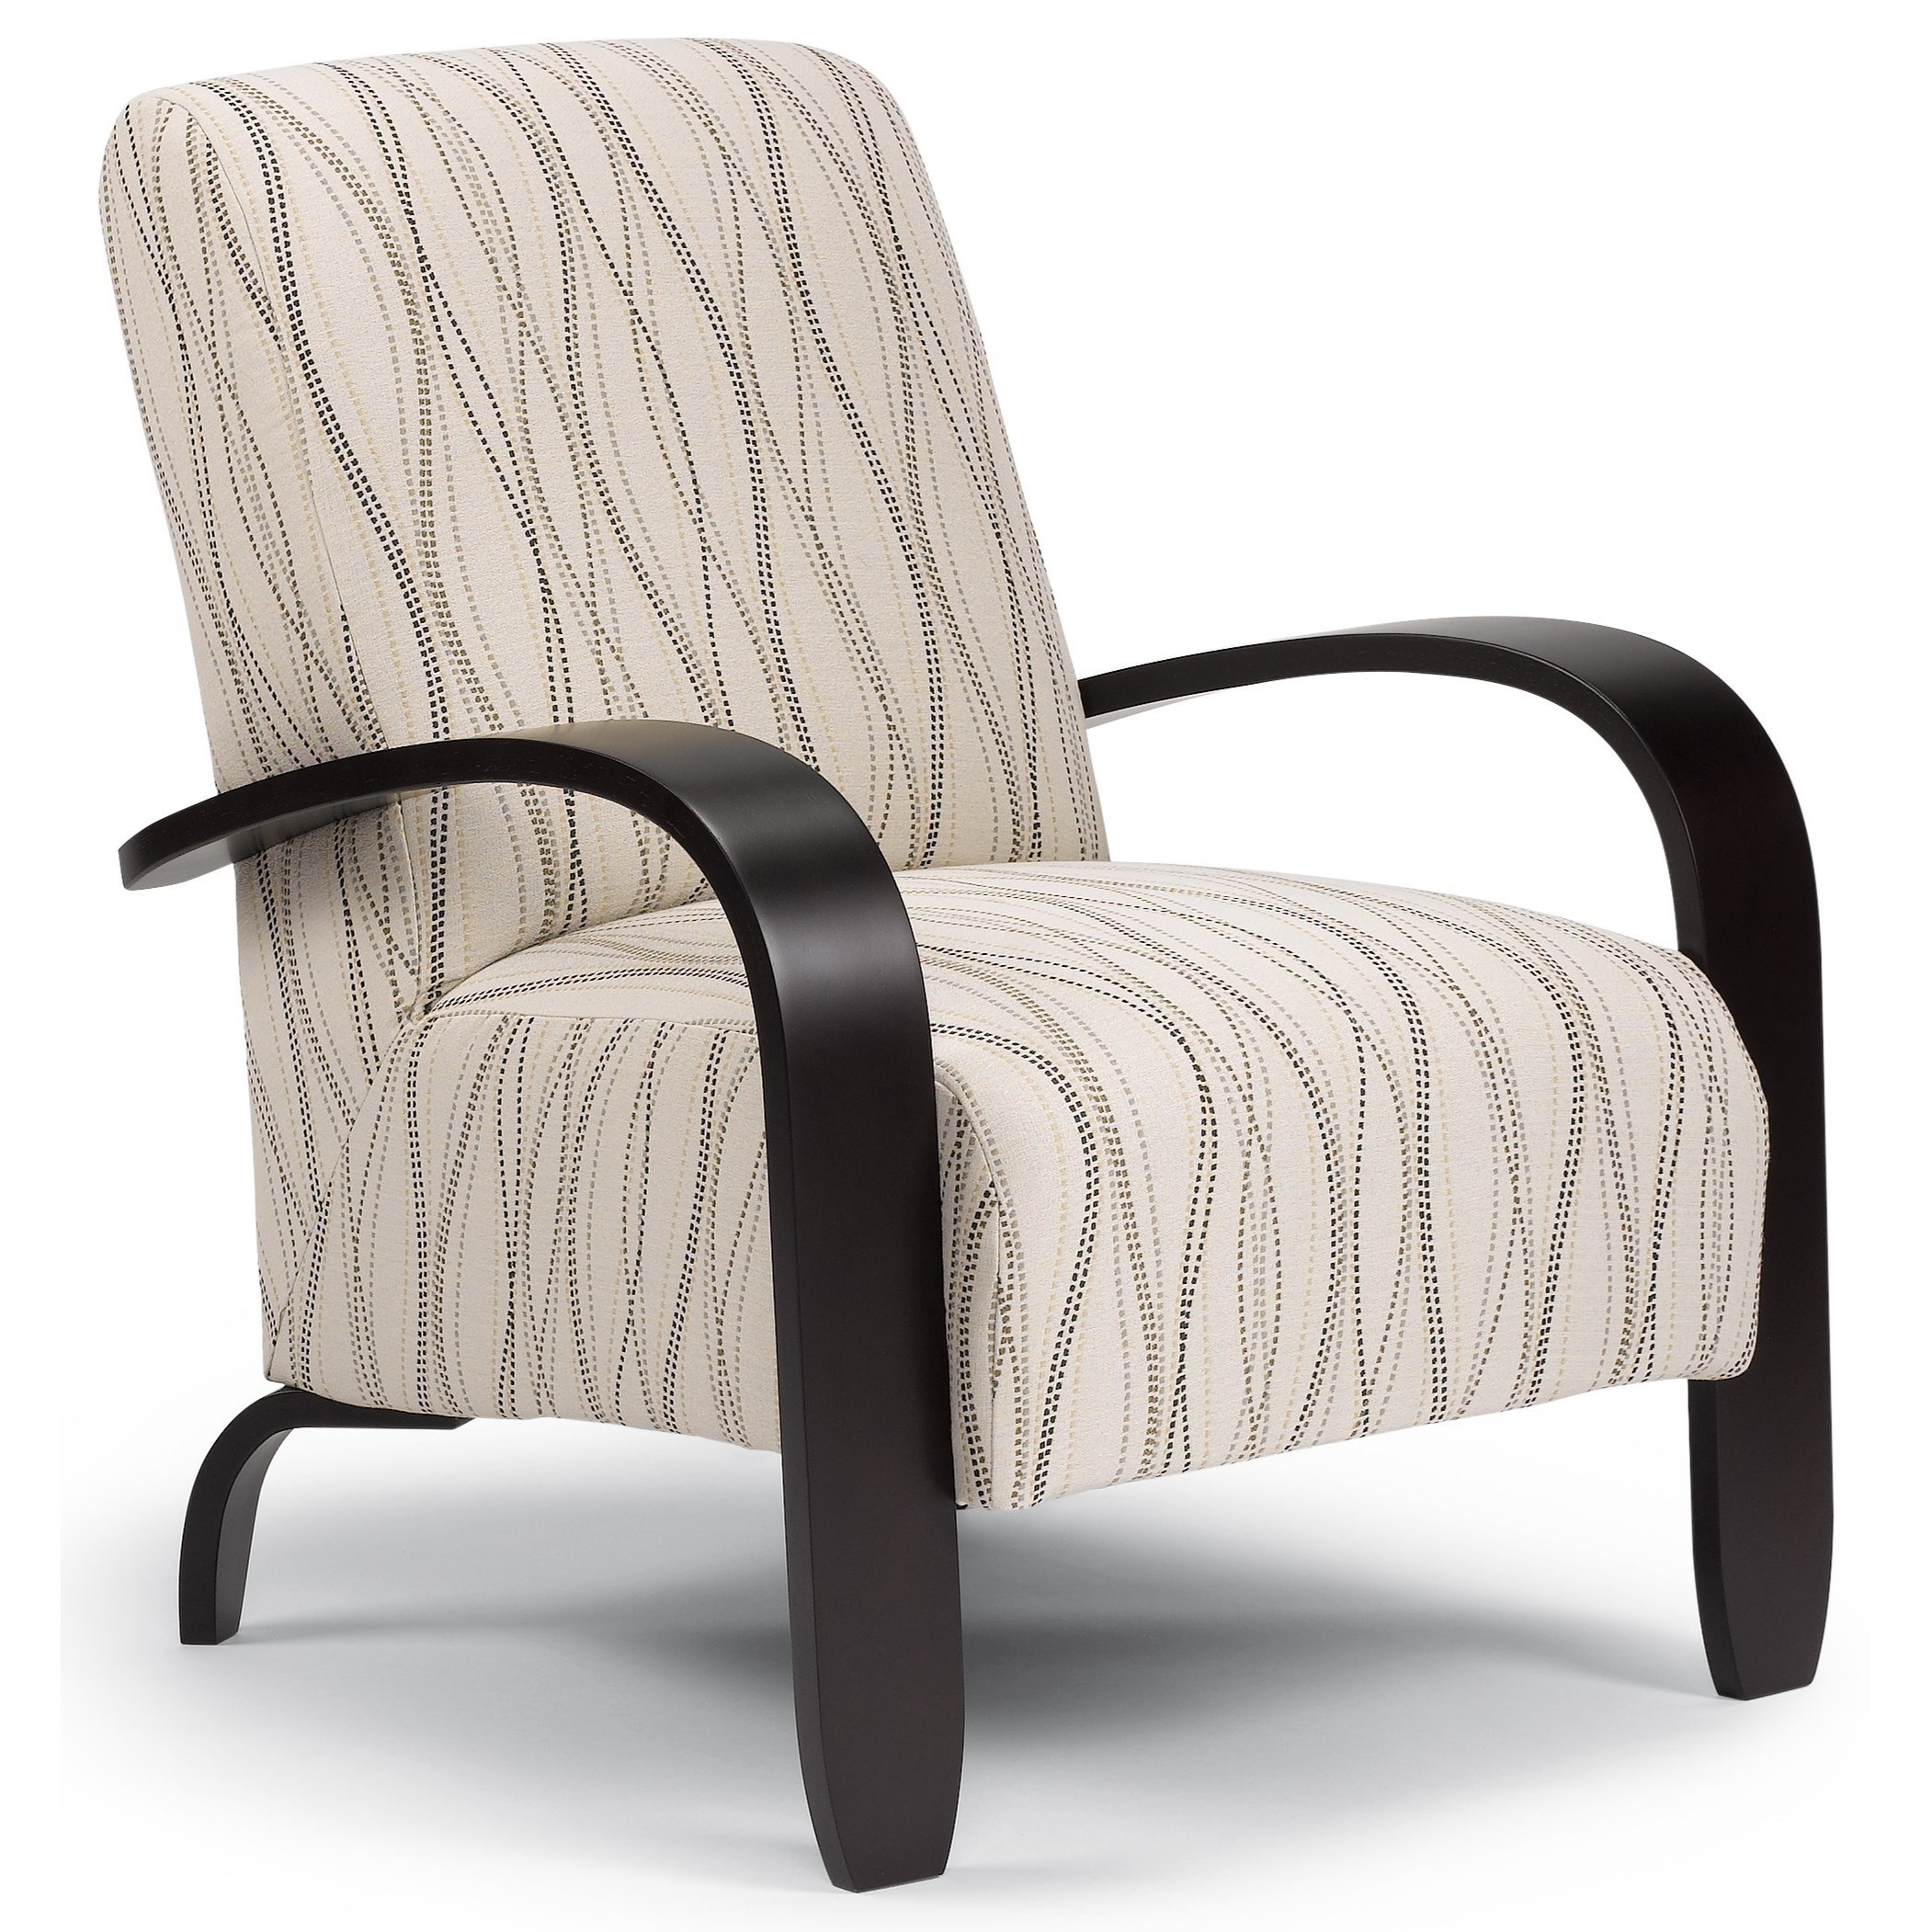 Wood Club Chair Accent Chairs Maravu Exposed Wood Accent Chair By Best Home Furnishings At Conlin S Furniture